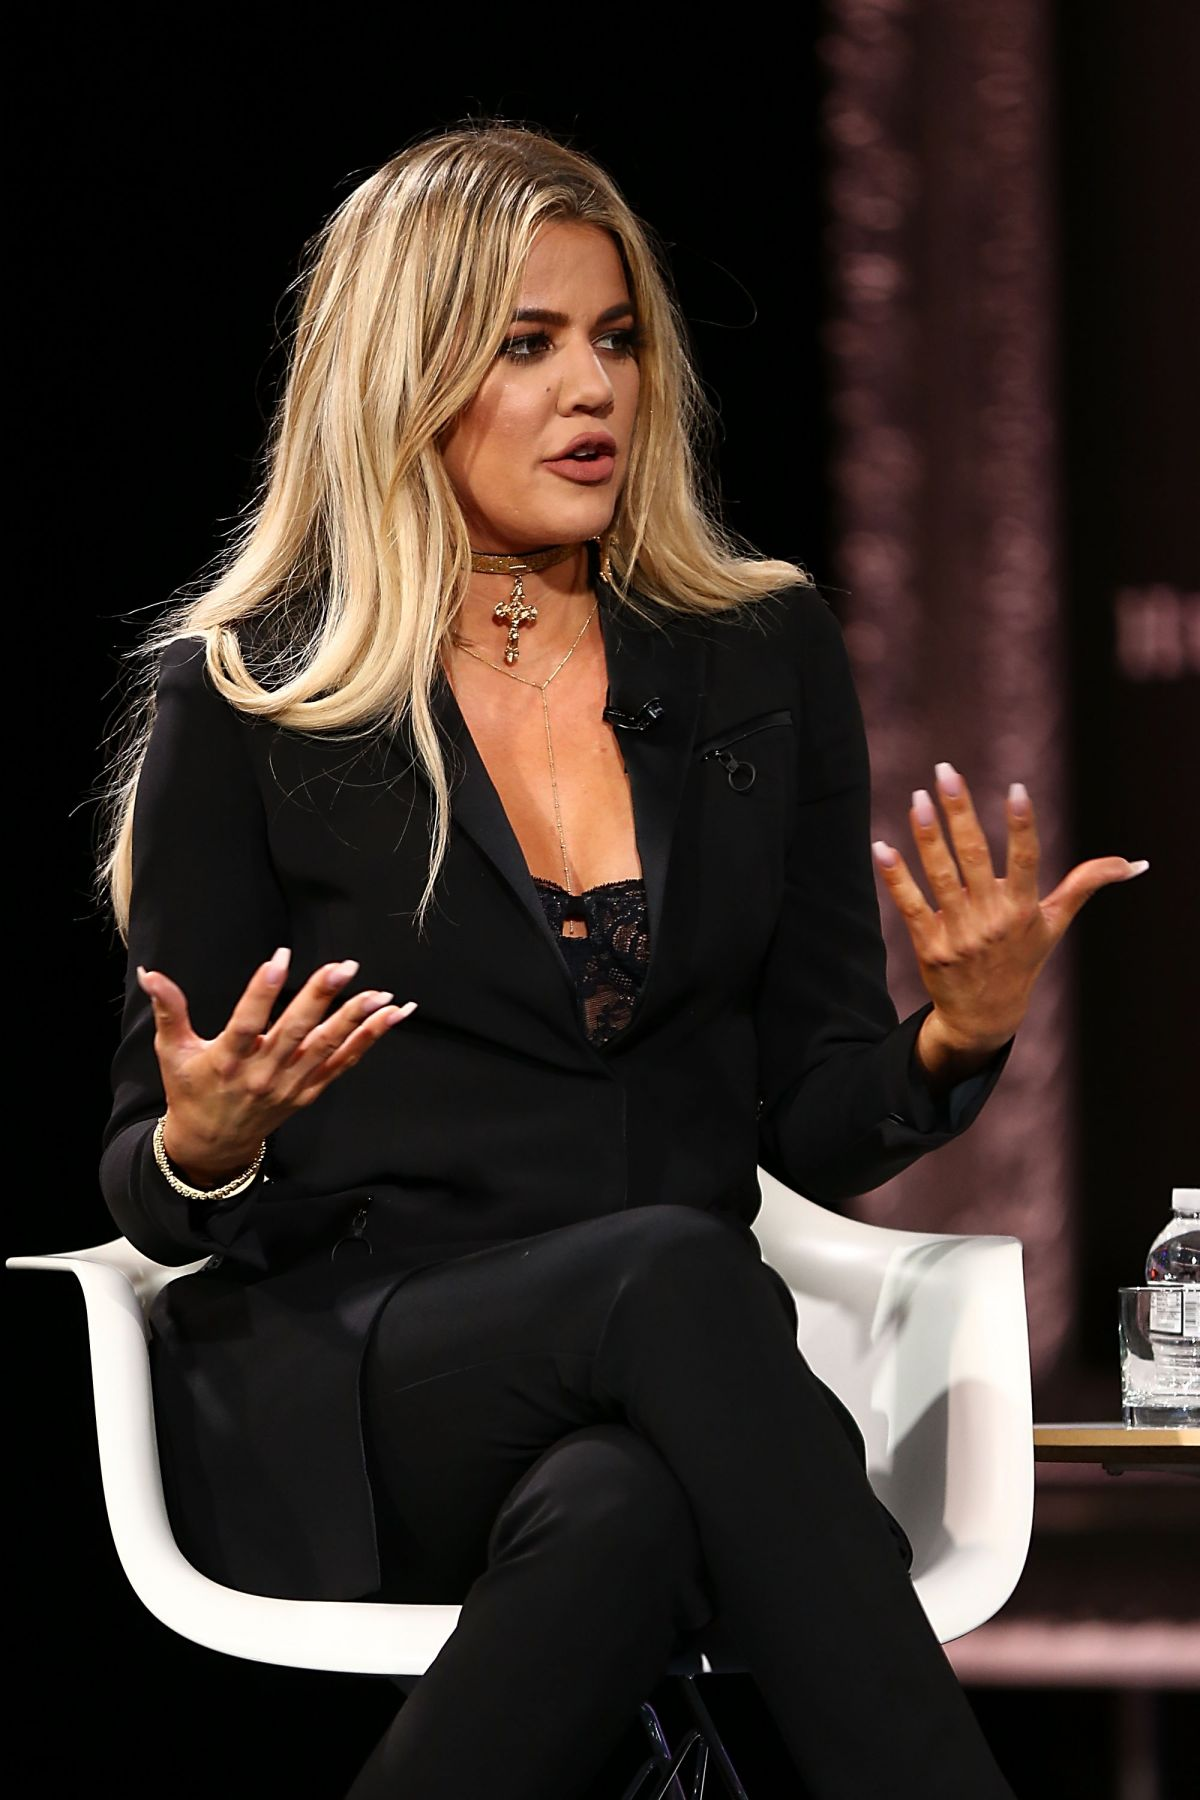 khloe kardashian - photo #33